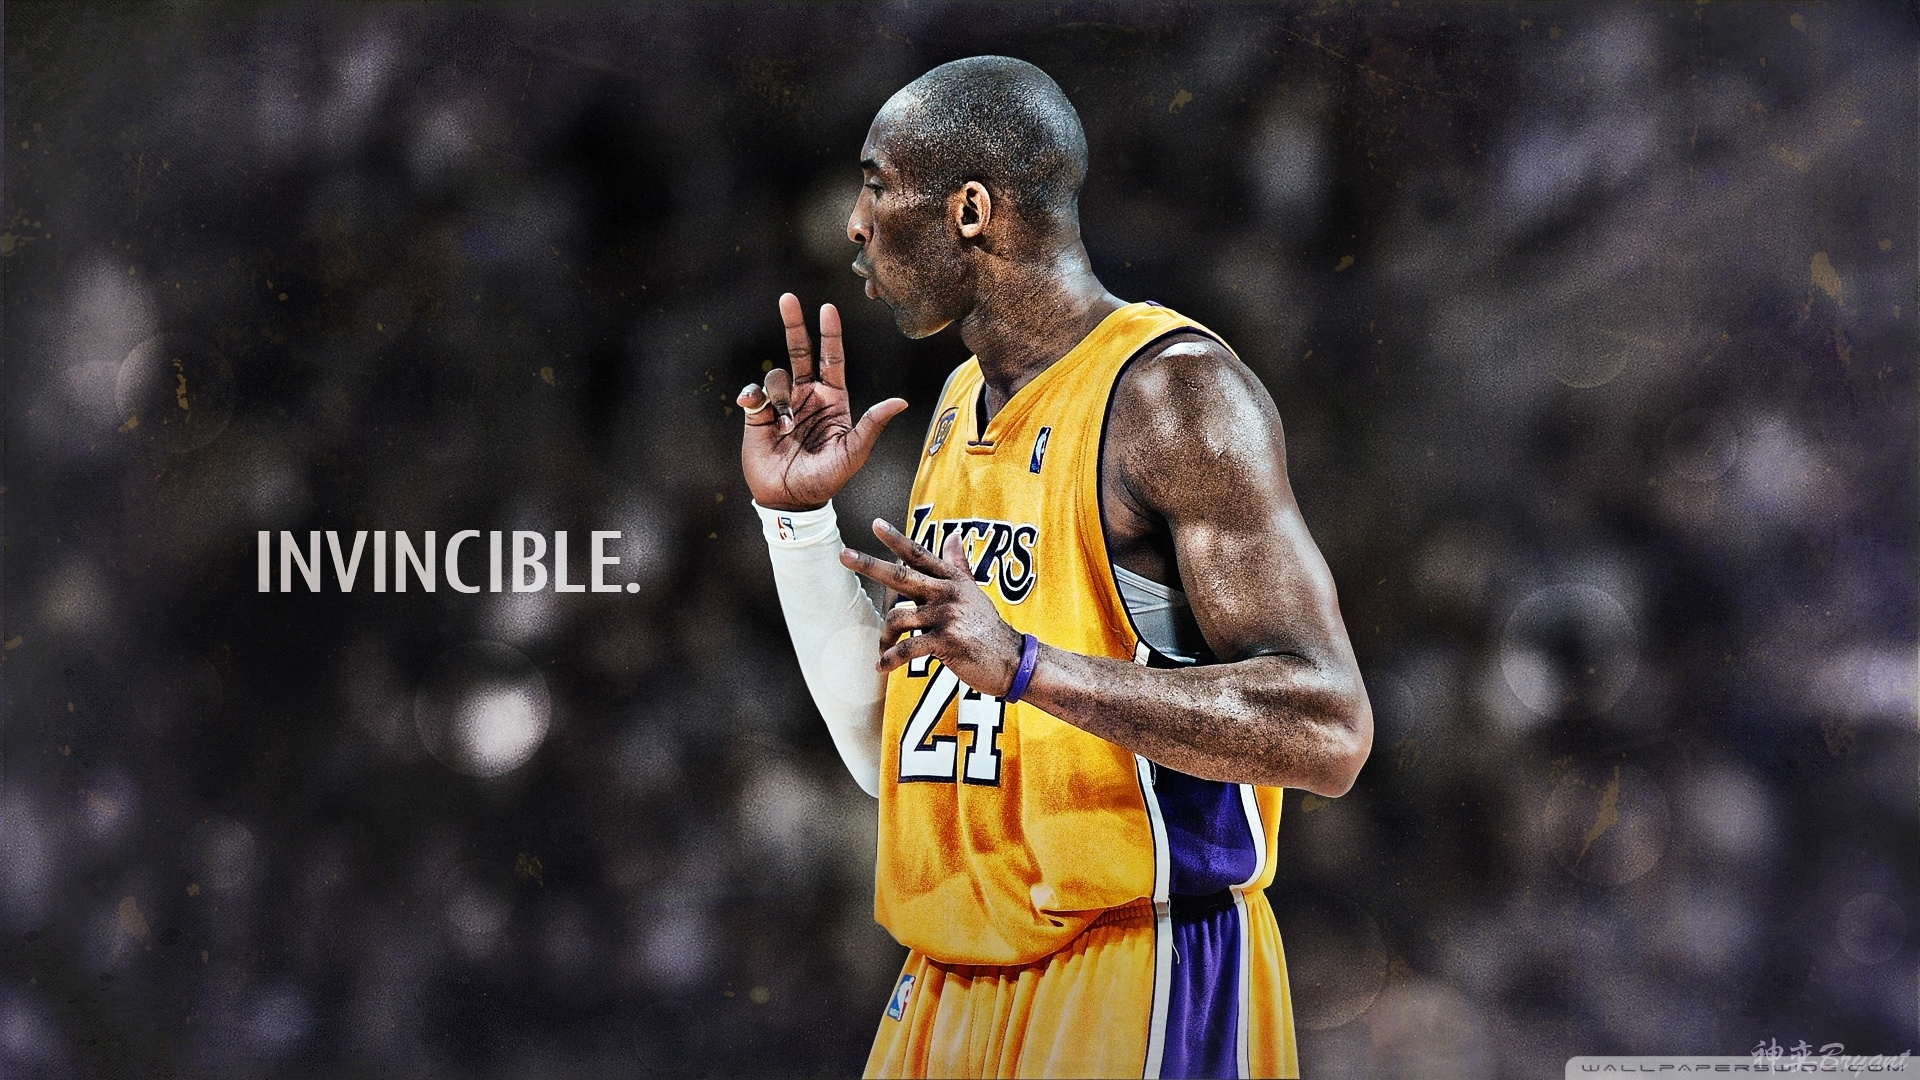 kobe bryant invincible ❤ 4k hd desktop wallpaper for 4k ultra hd tv